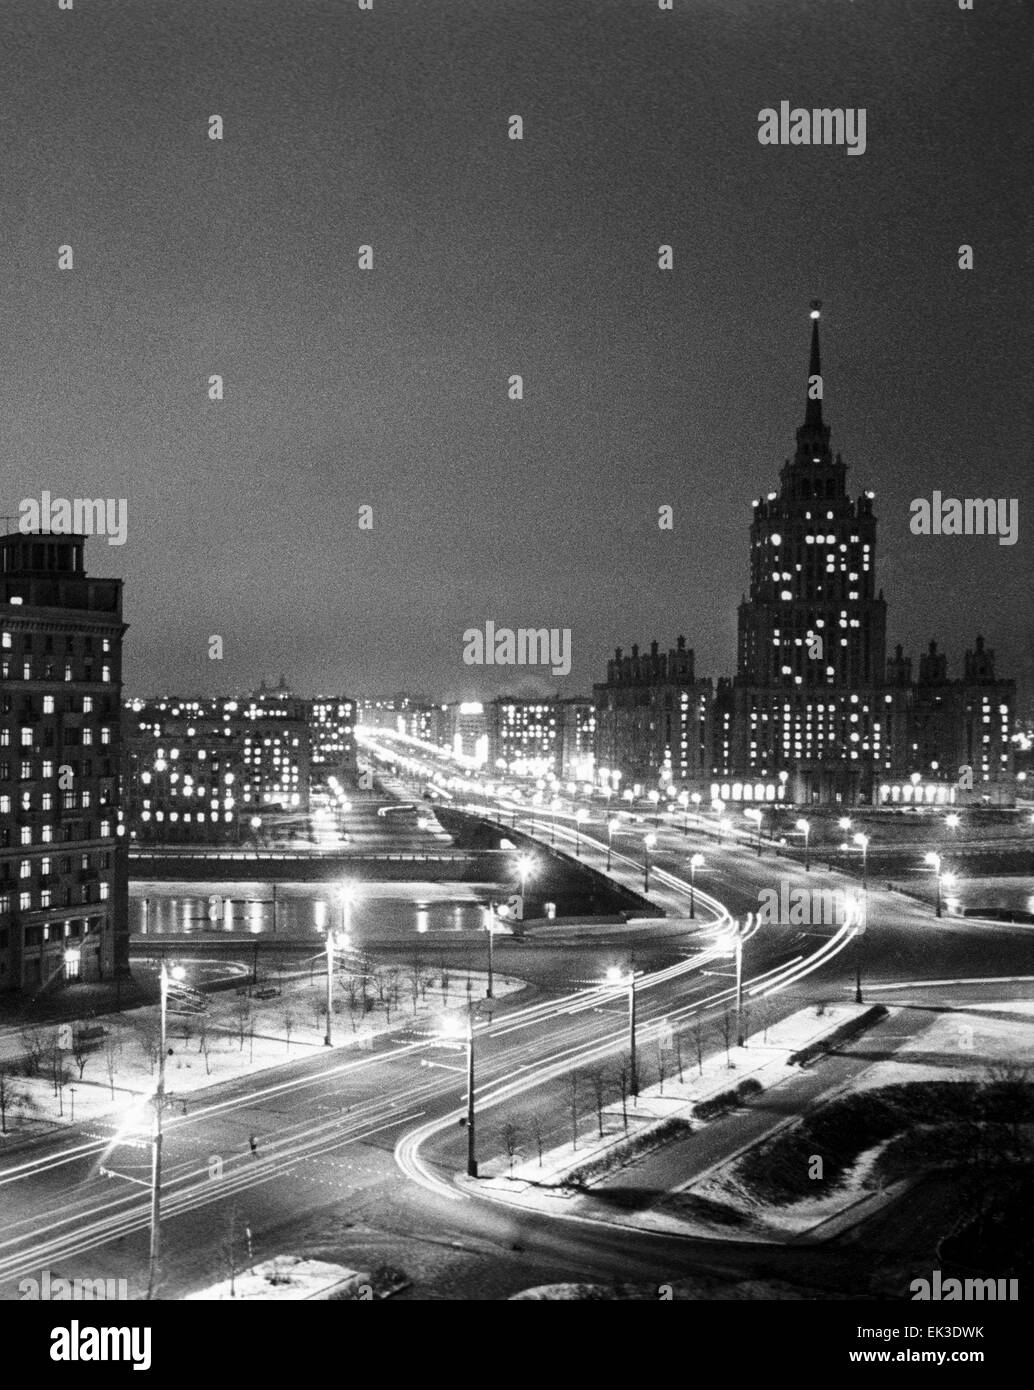 Moscow. USSR. A view of Kutuzov Avenue at night. - Stock Image